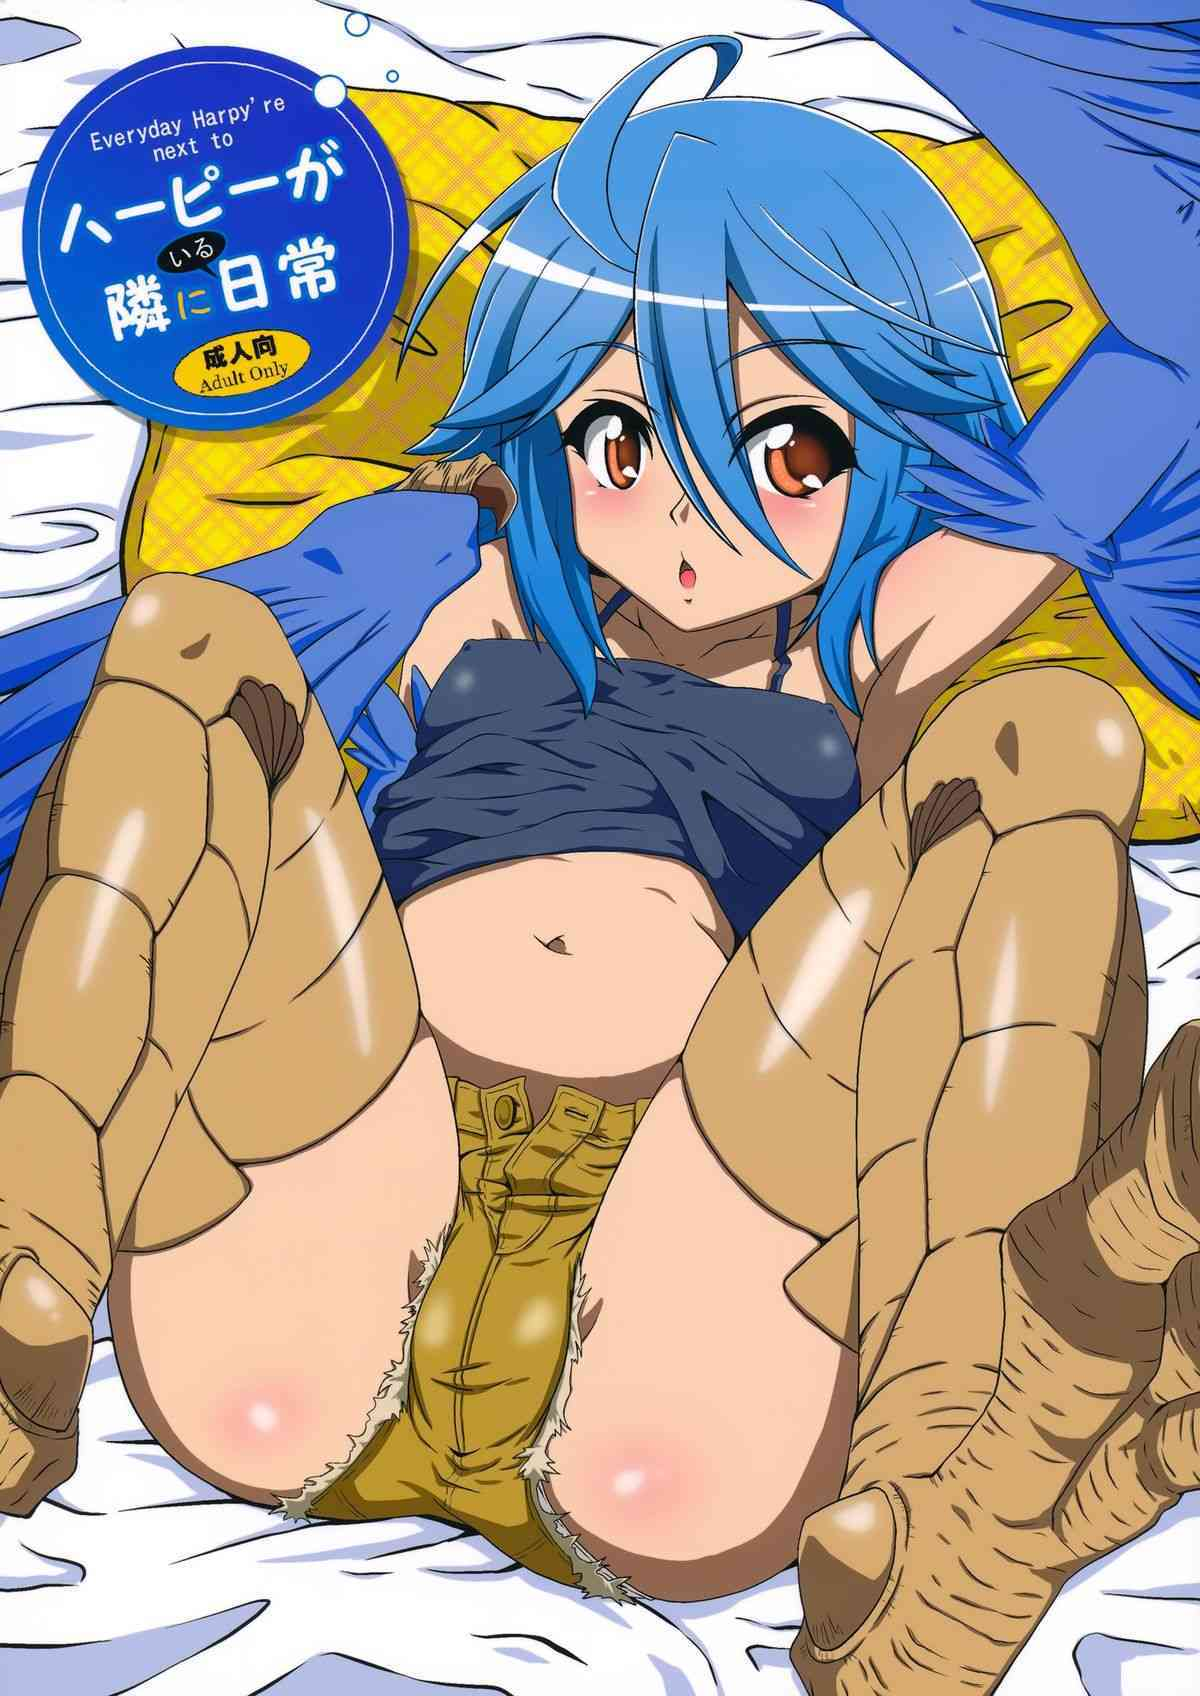 Harpy girl hentai naked movies